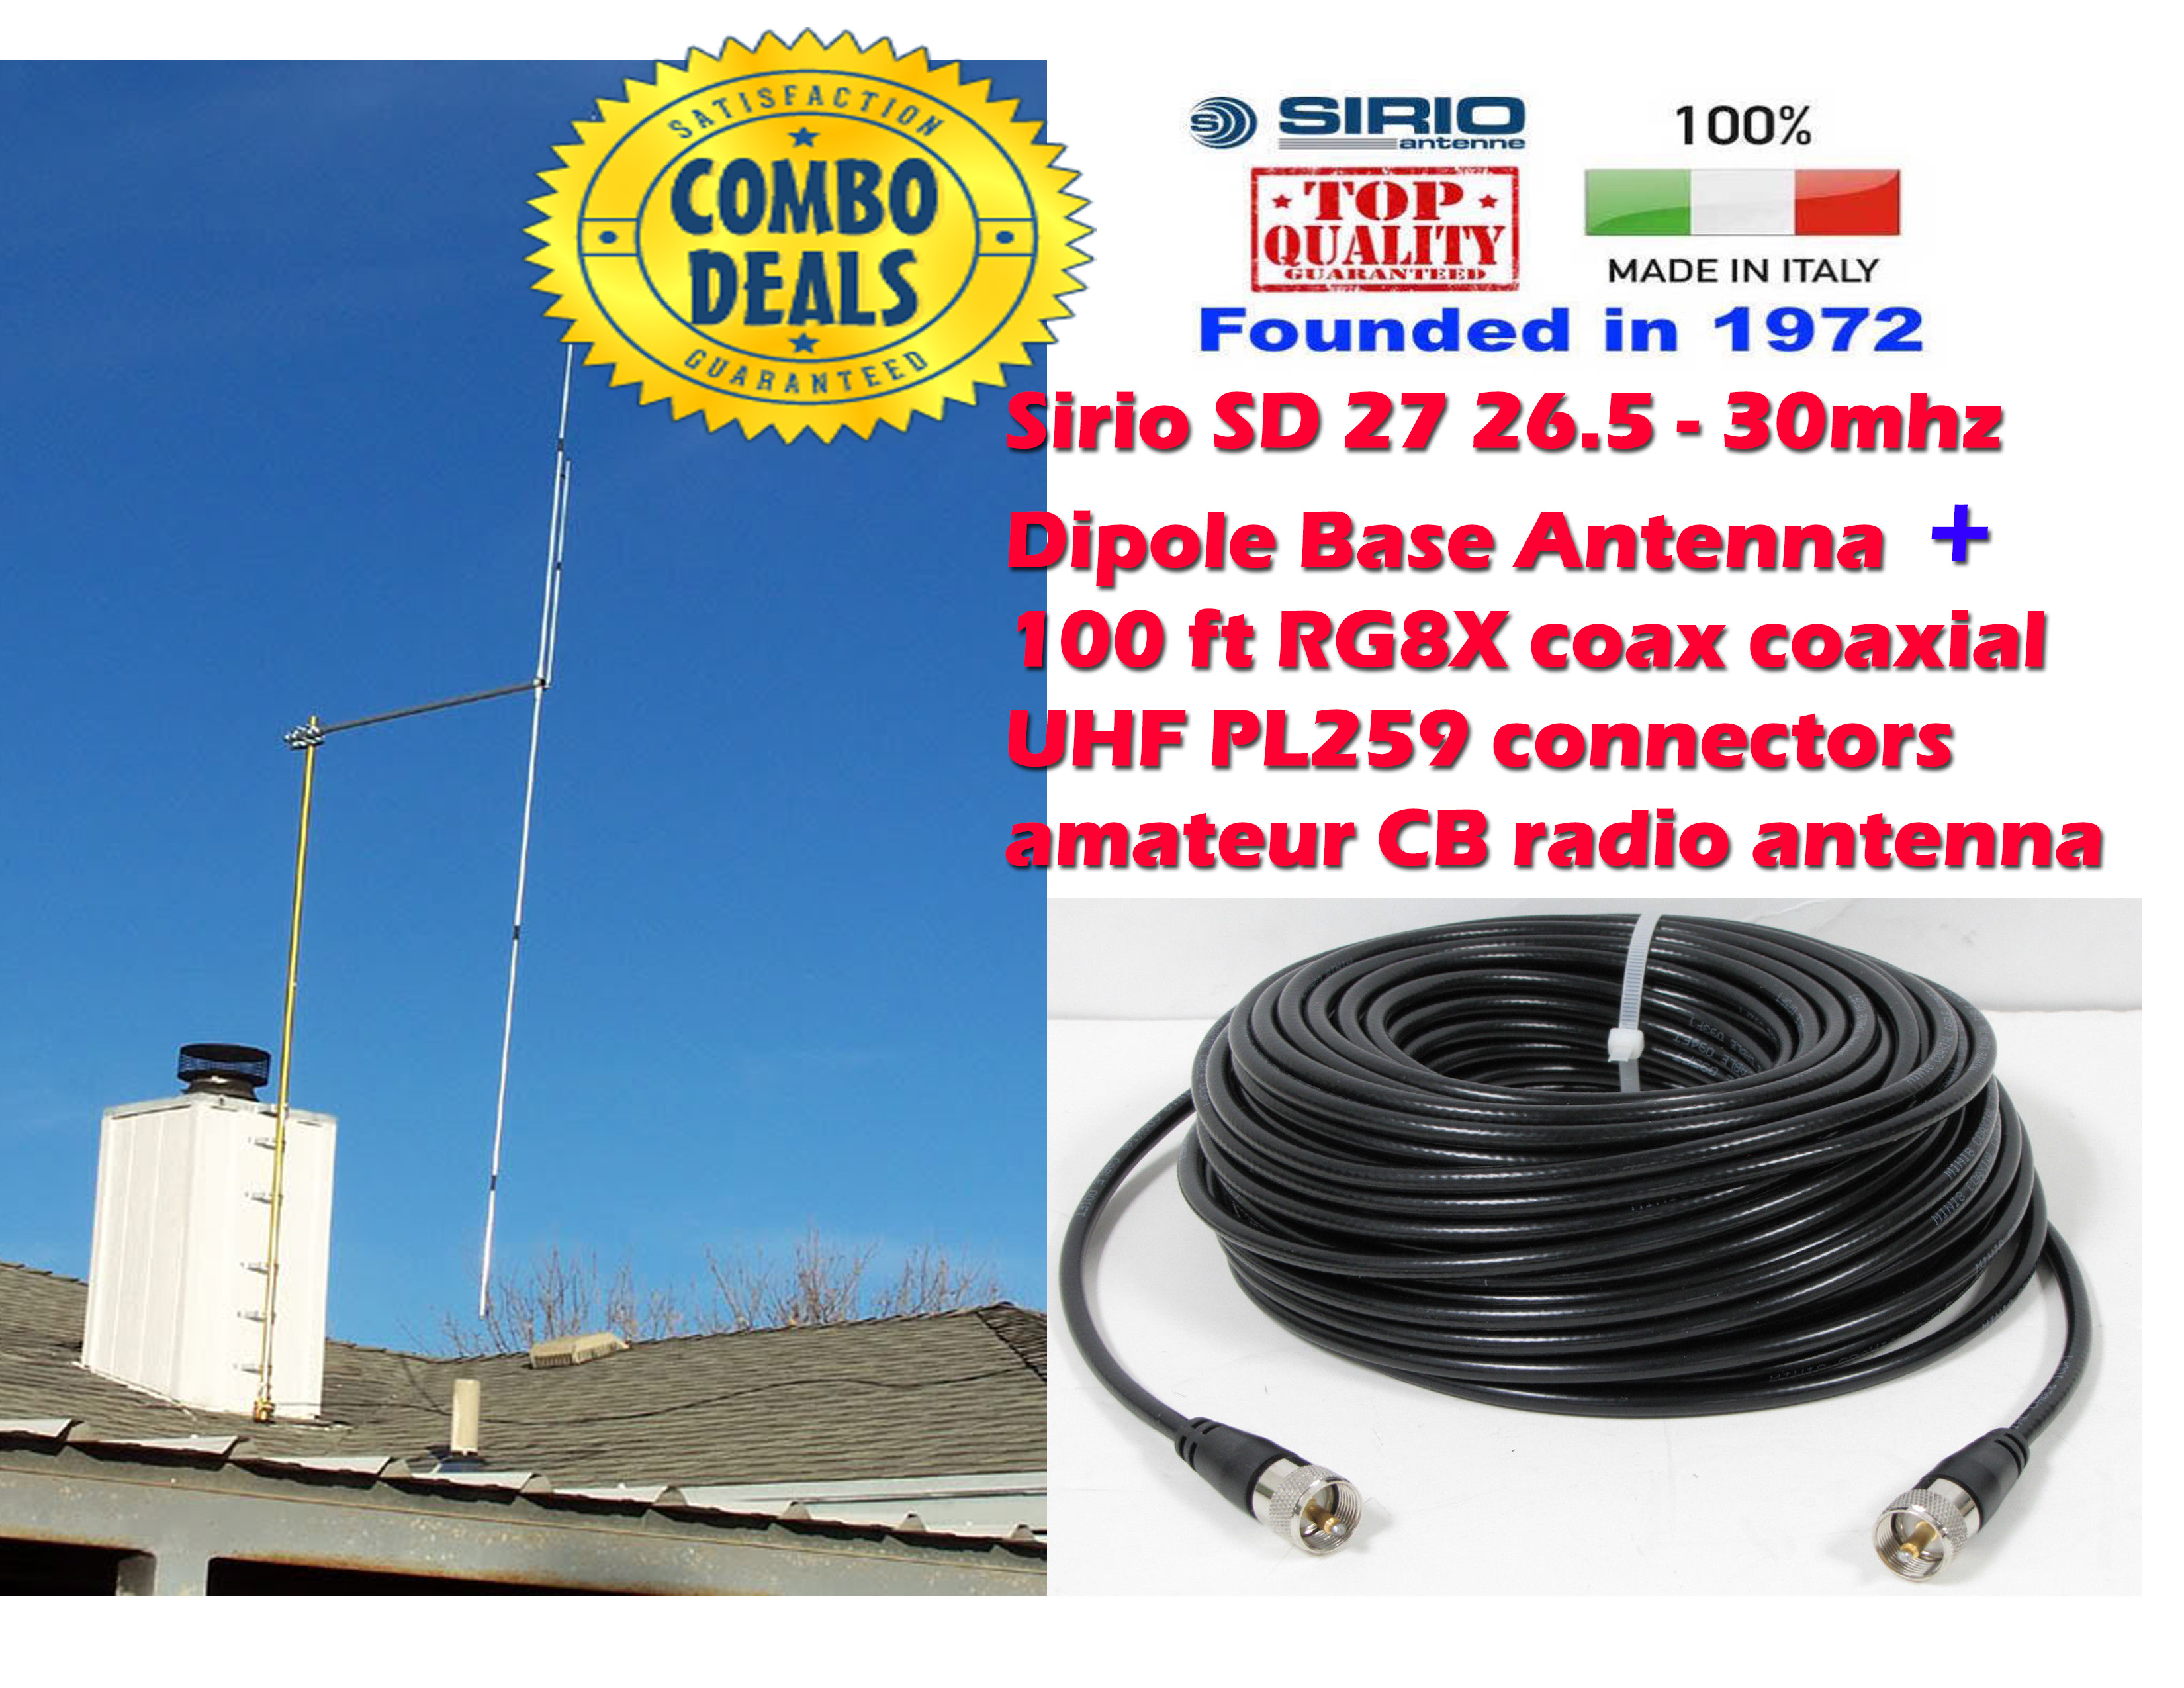 Sirio SD 27 26.5 - 30mhz Dipole Base Antenna with 100 ft Coax